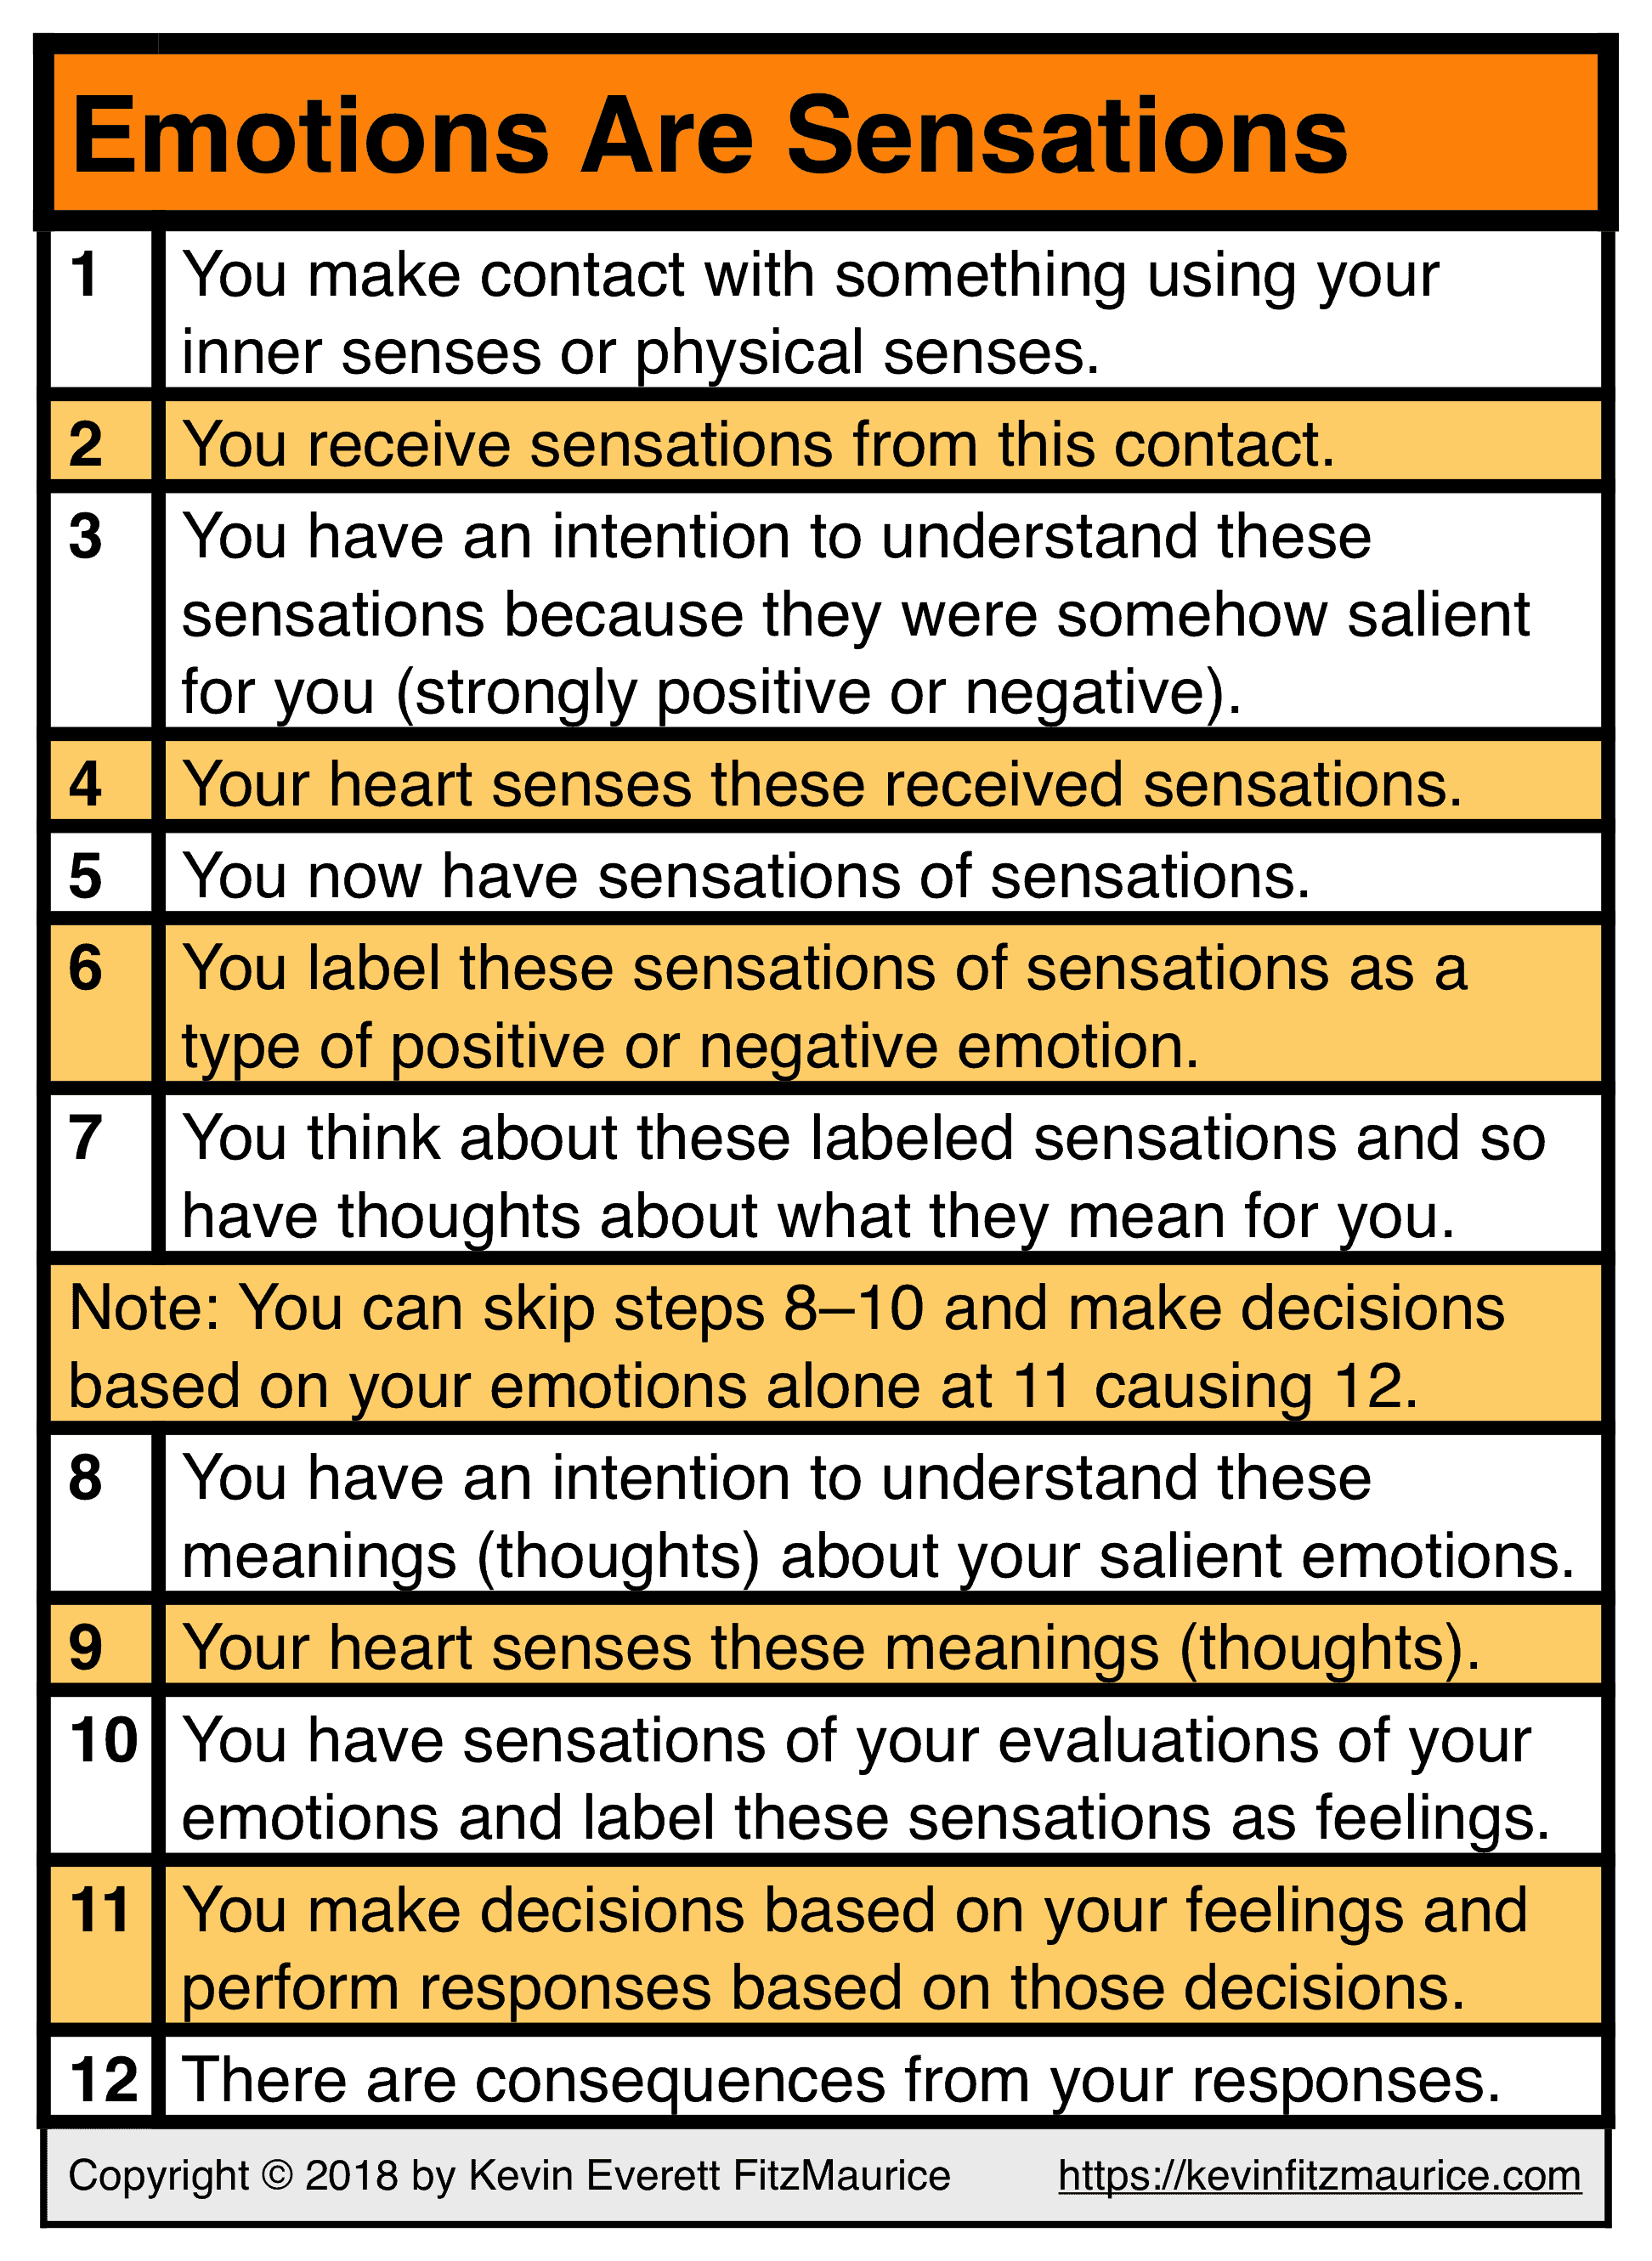 Emotions Are Sensations of Sensations